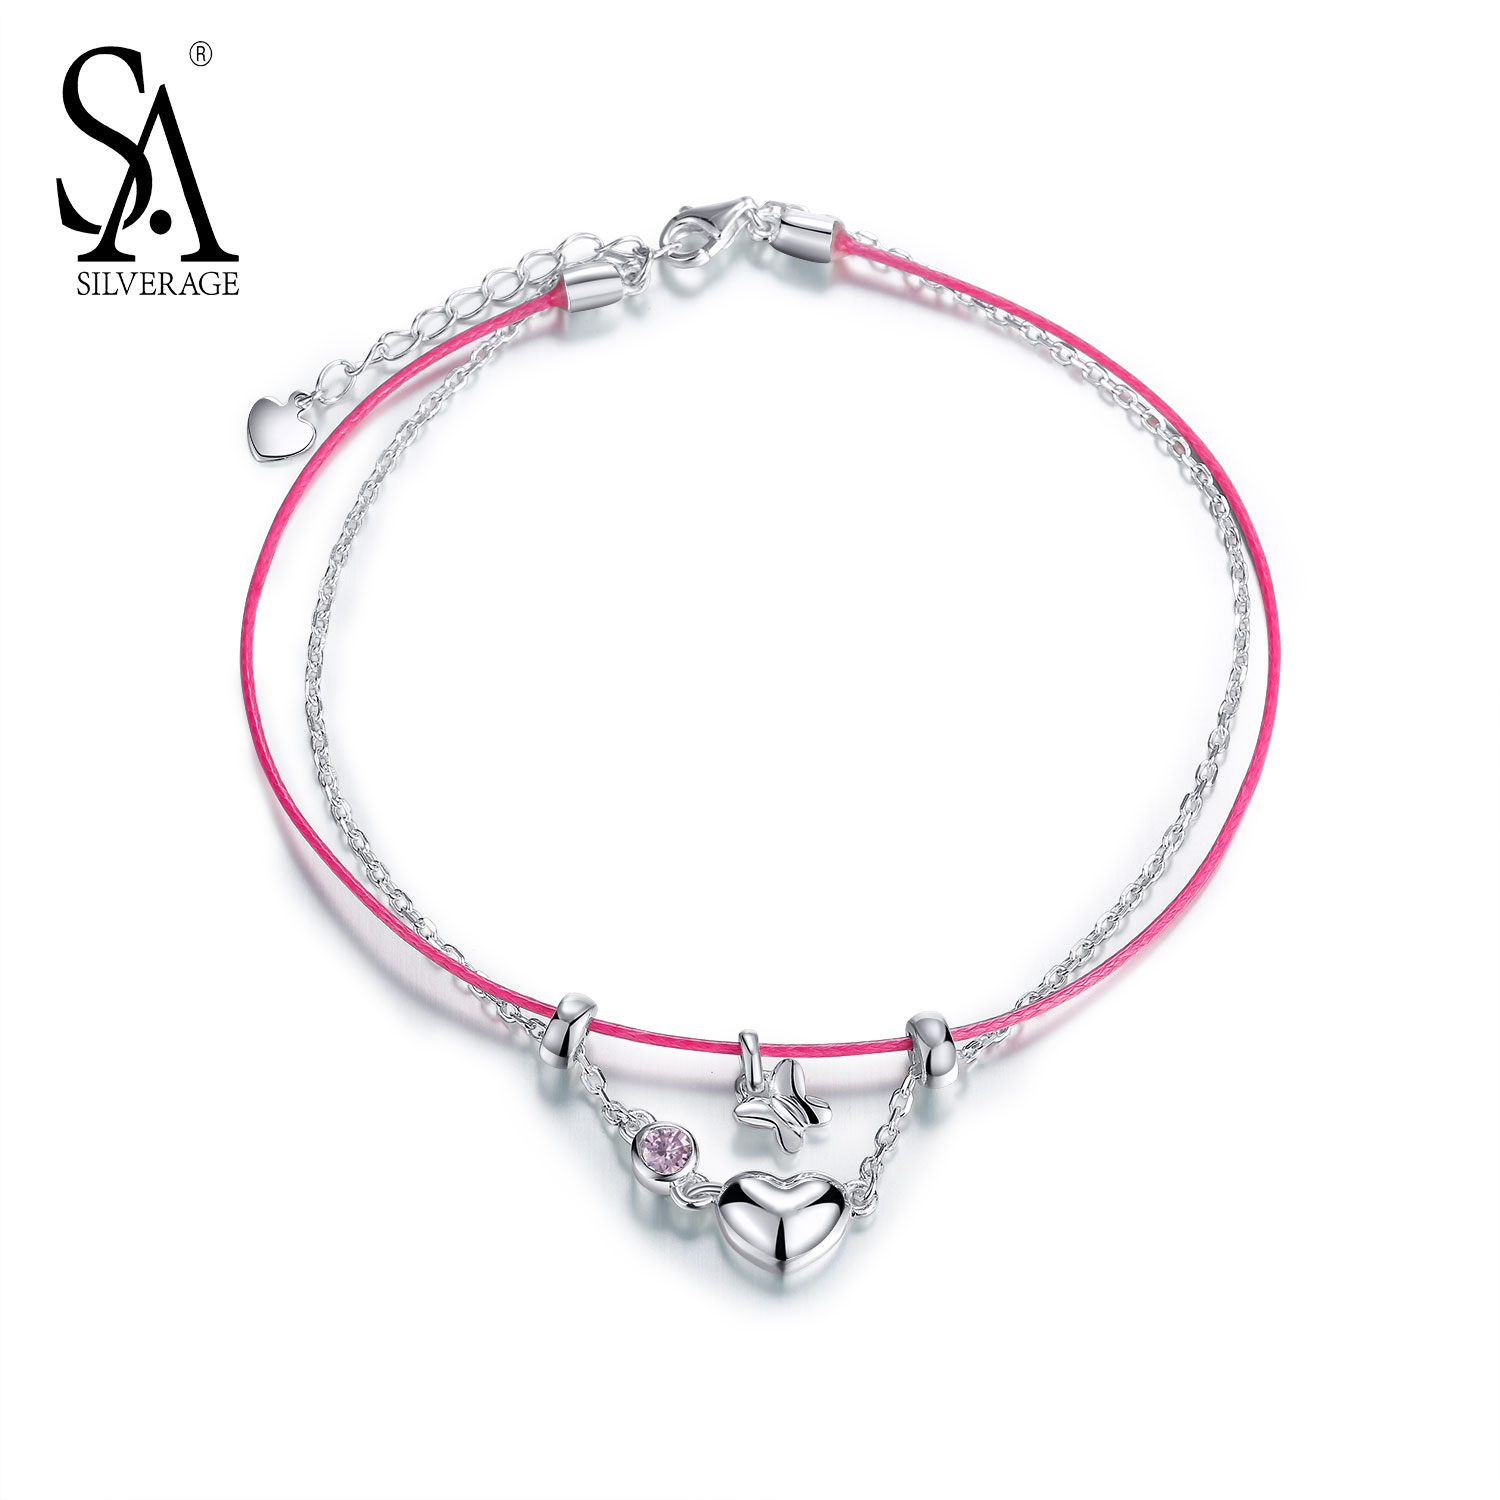 SA SILVERAGE Genuine 925 Sterling Silver Fine Jewelry Classic Double deck Red Rope Chains Hearts Anklets for Women